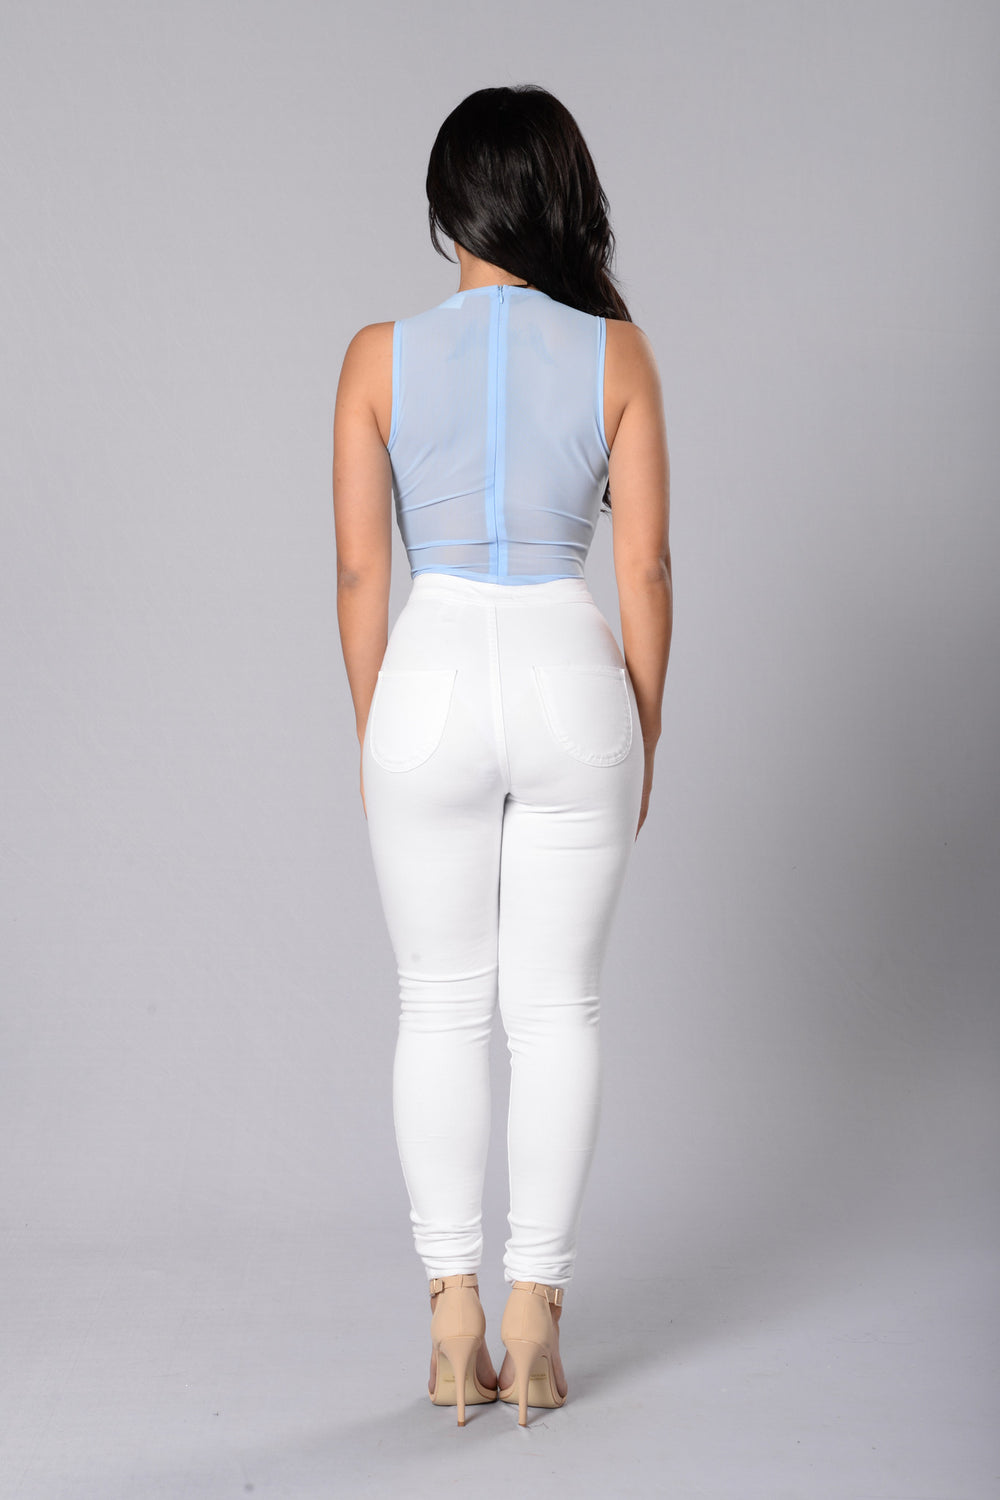 Beautiful Disaster Bodysuit - Pale Blue